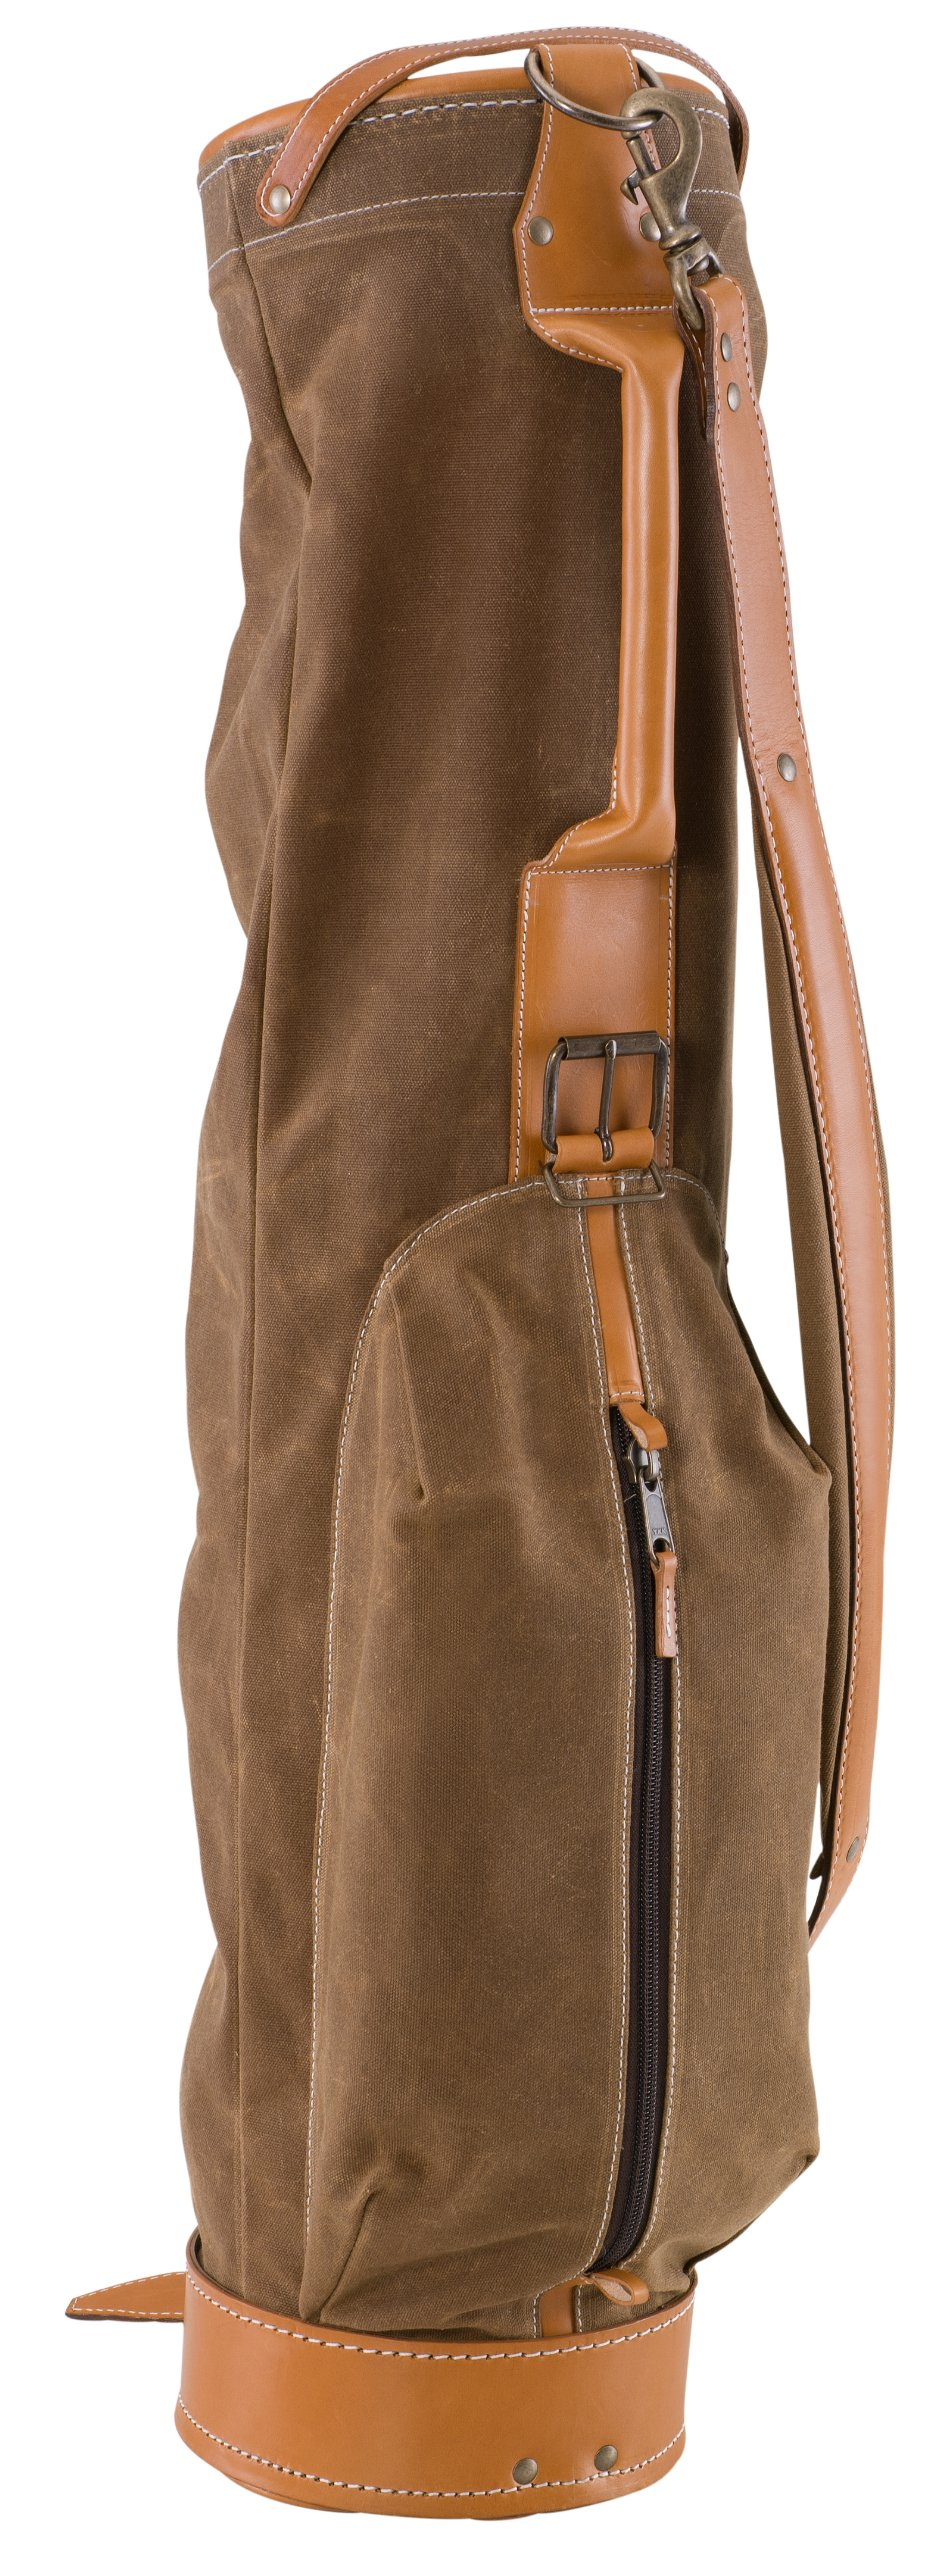 BELDING American Collection Vintage Golf Carry Bag, 7-Inch, Tan by BELDING (Image #1)